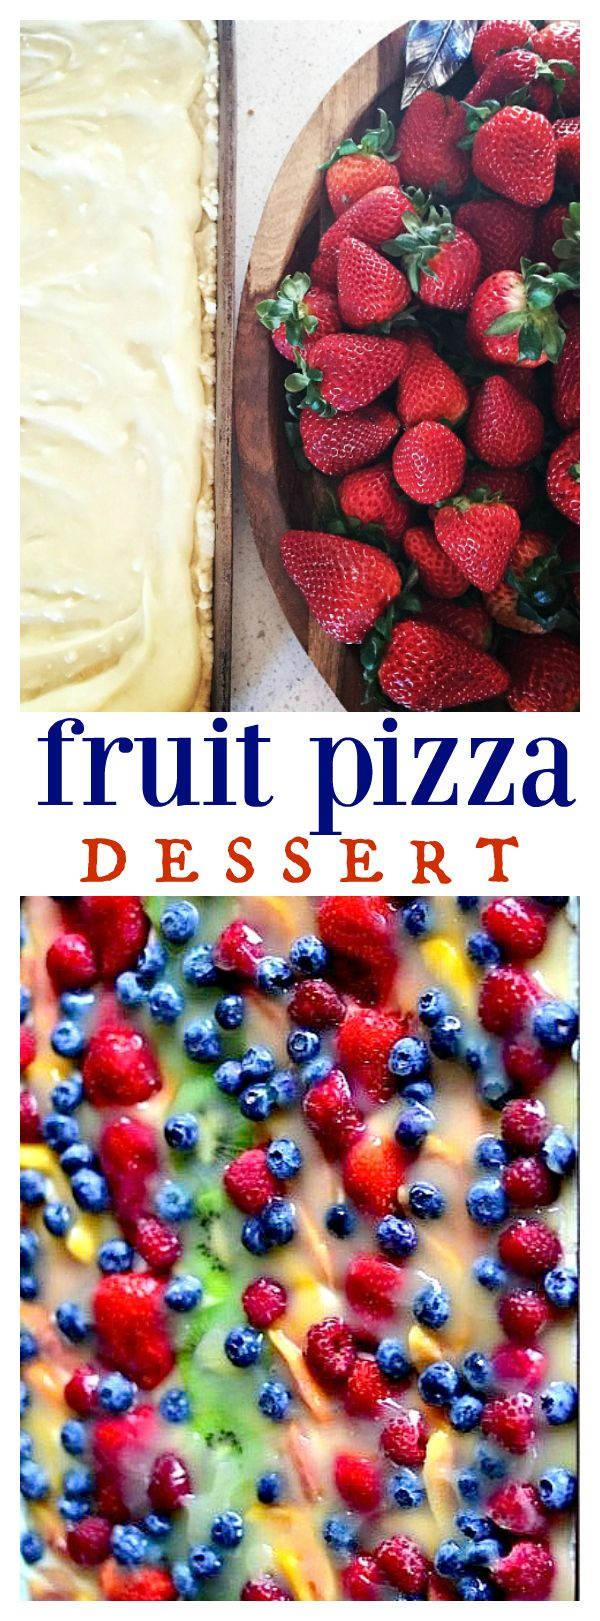 Fruit Pizza Dessert for spring and summer entertaining | feeds a large group! ReluctantEntertainer.com